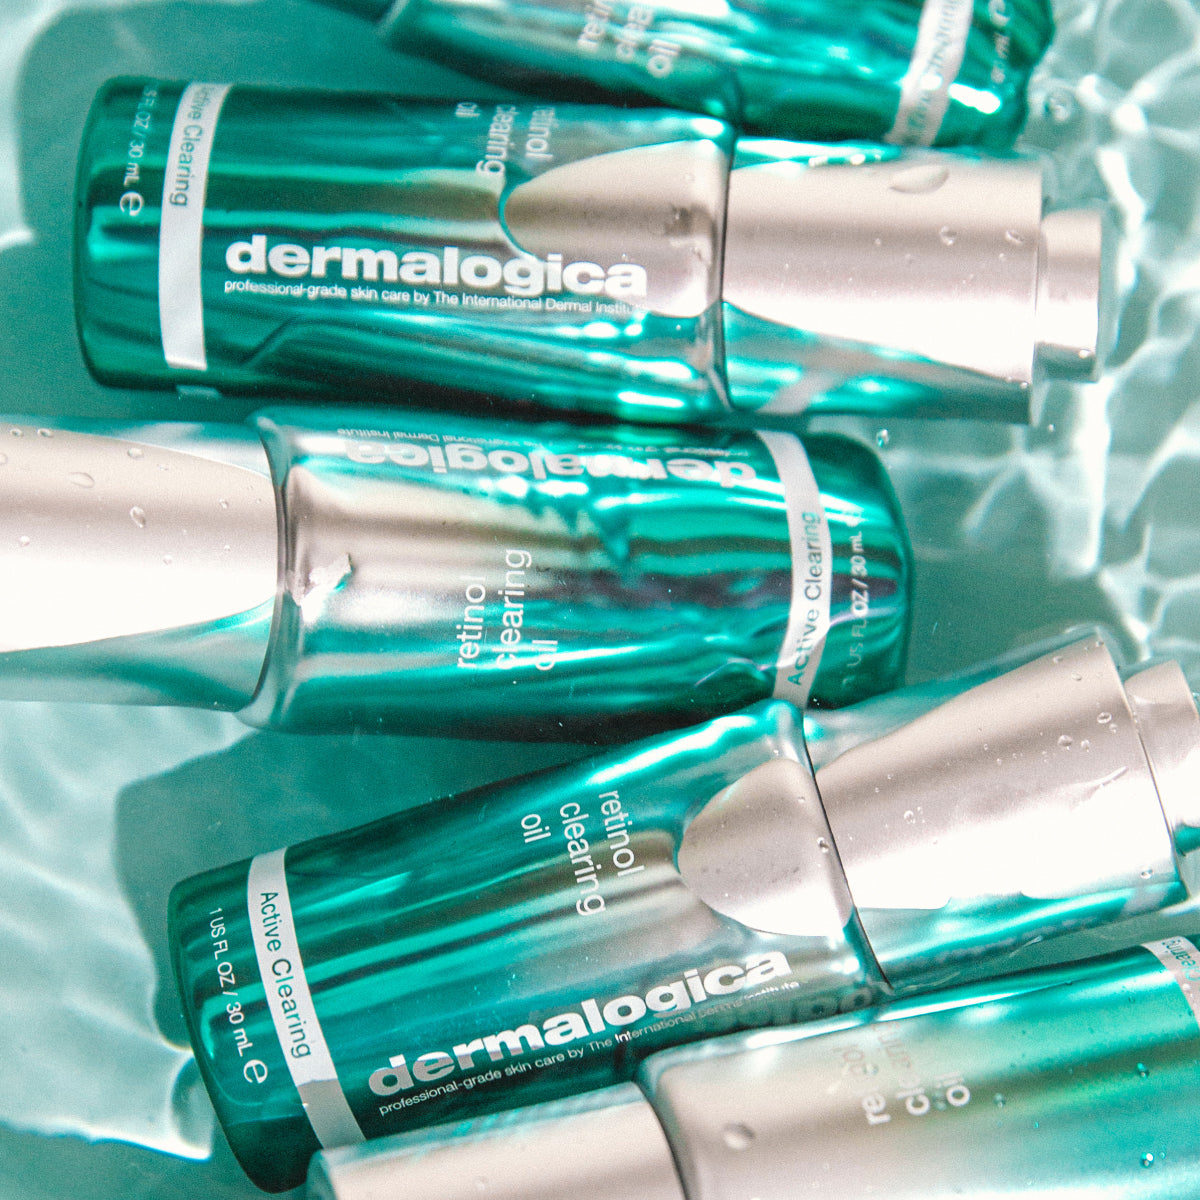 Dermalogica Retinol Clearing Oil Bottle